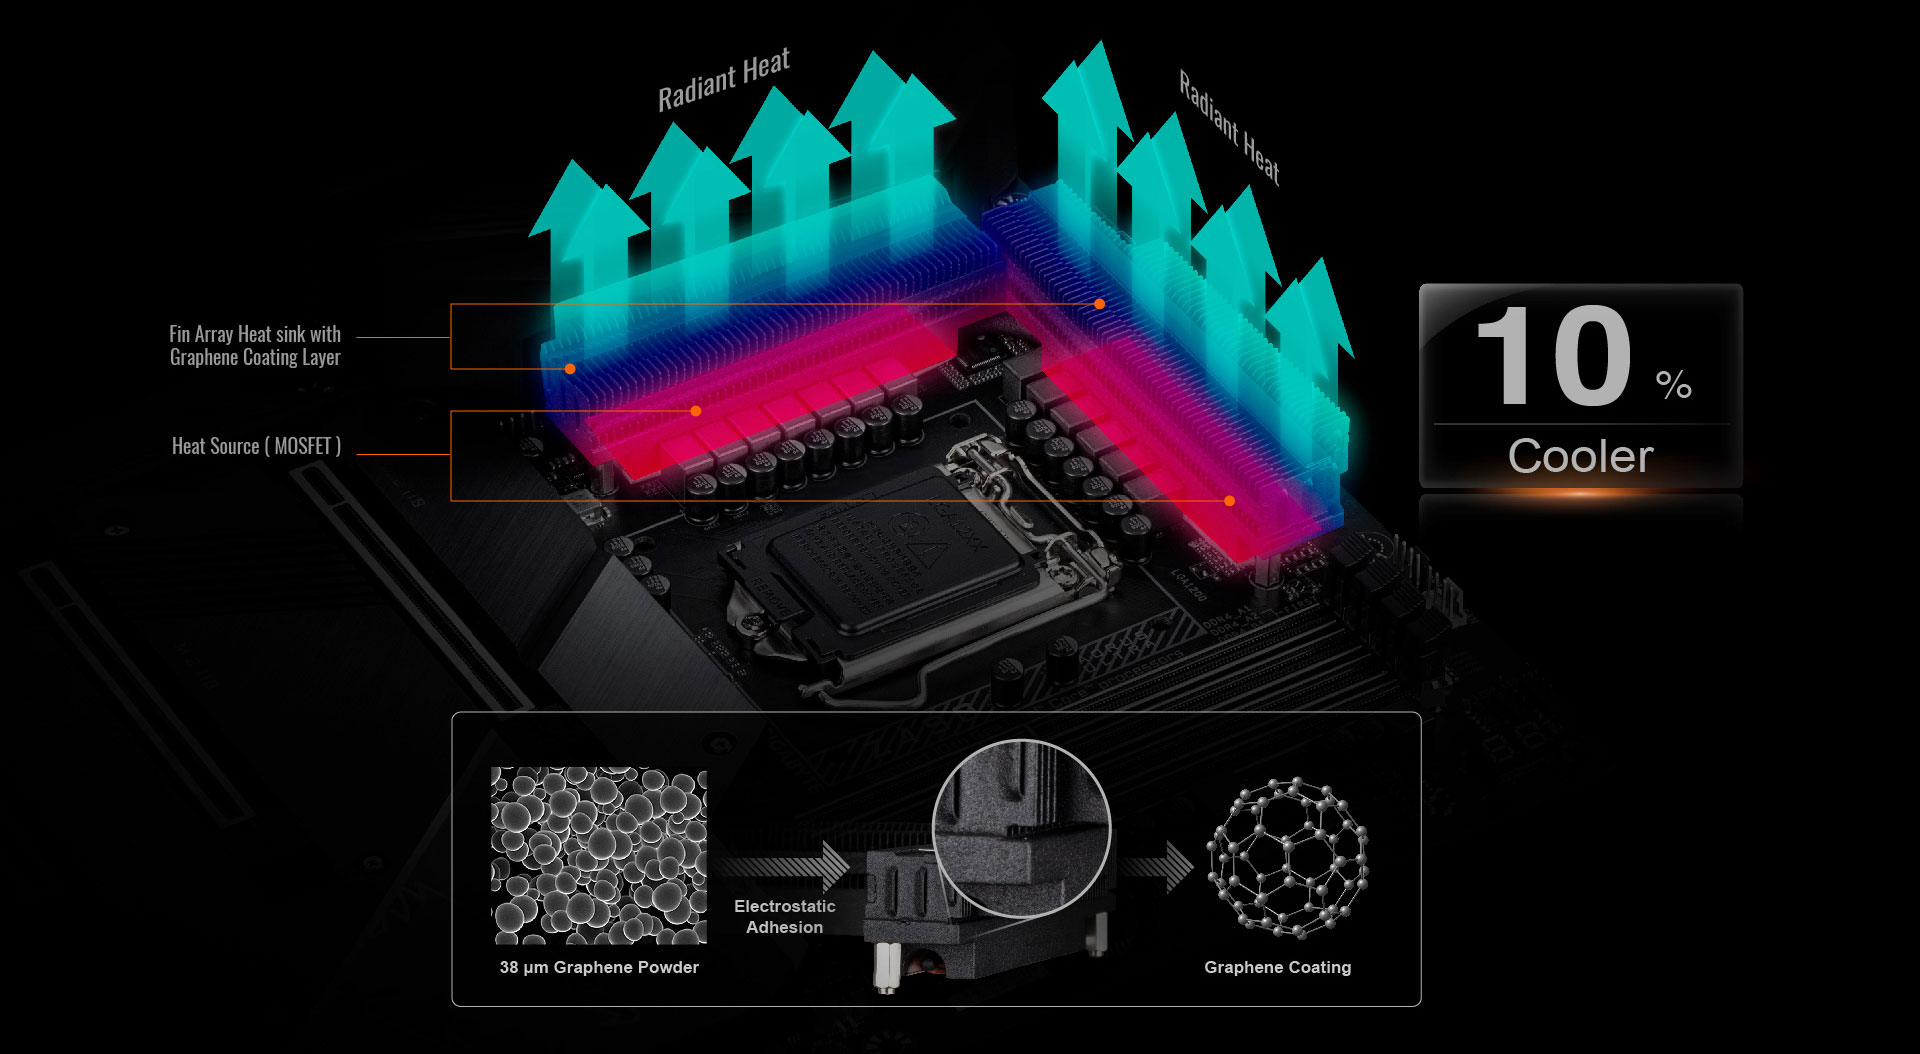 38 graphene power of the motherboard